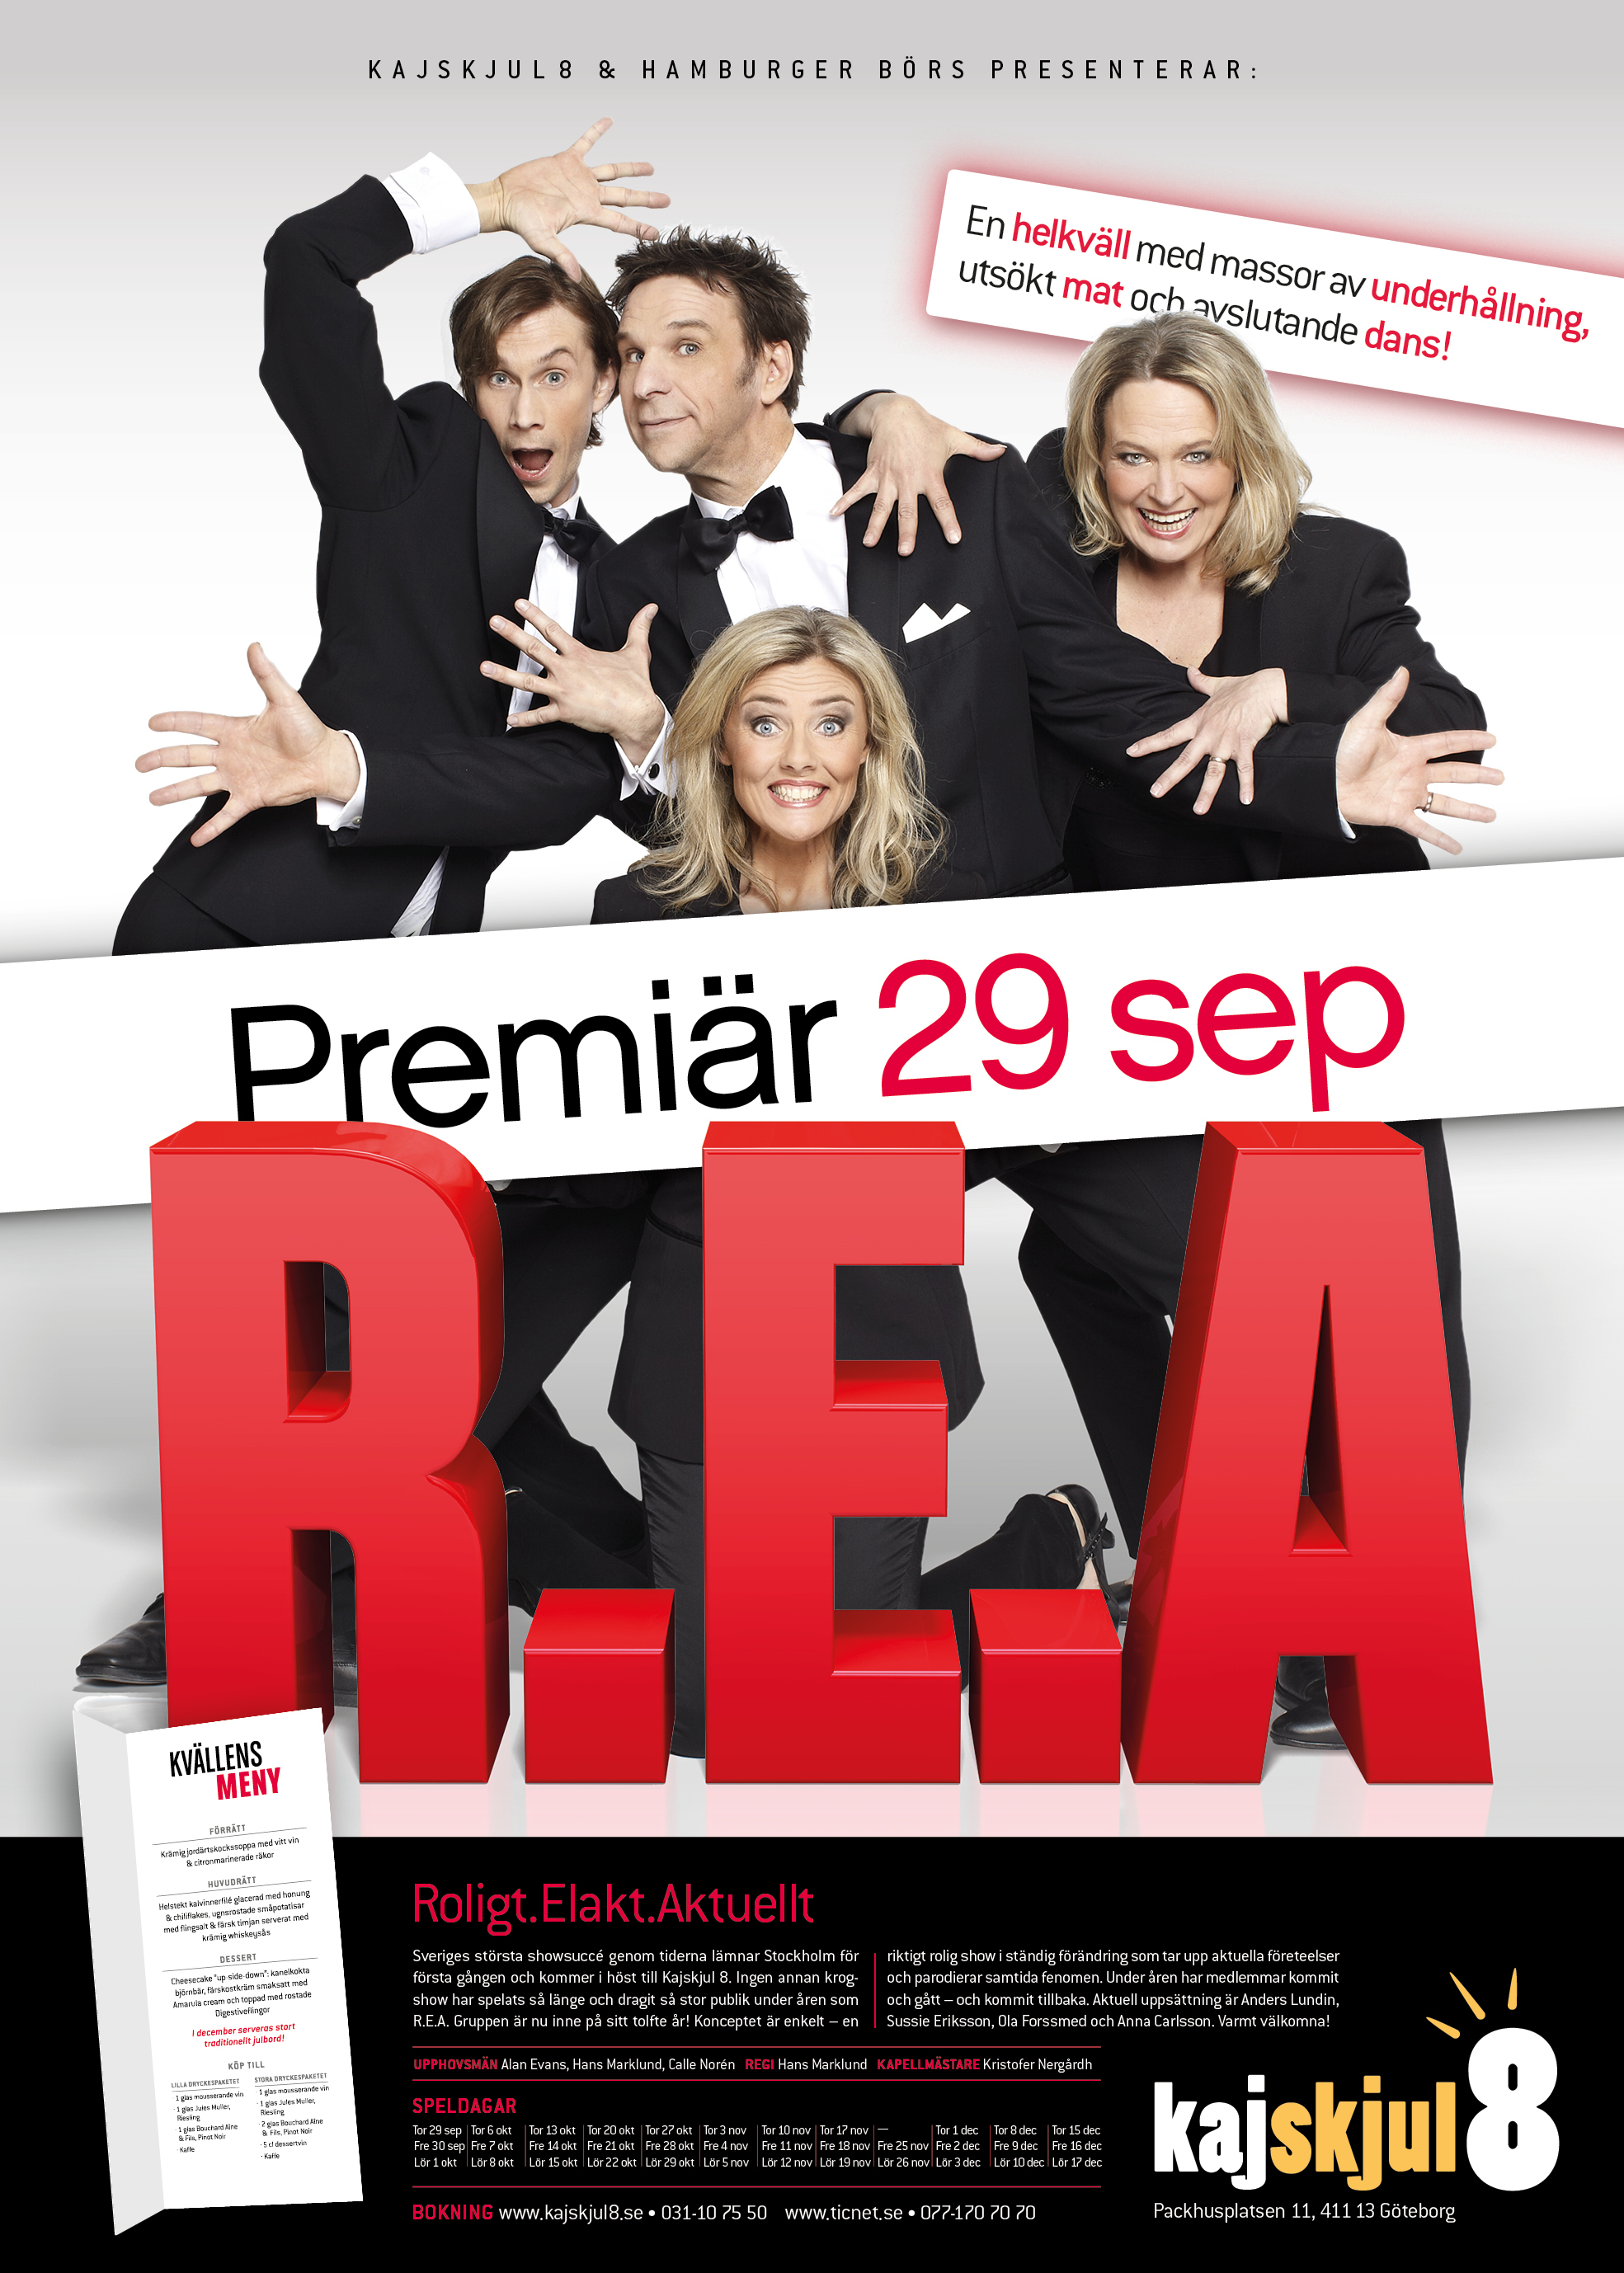 REA-1-Poster-50x70mm-high-premiar-03.jpg